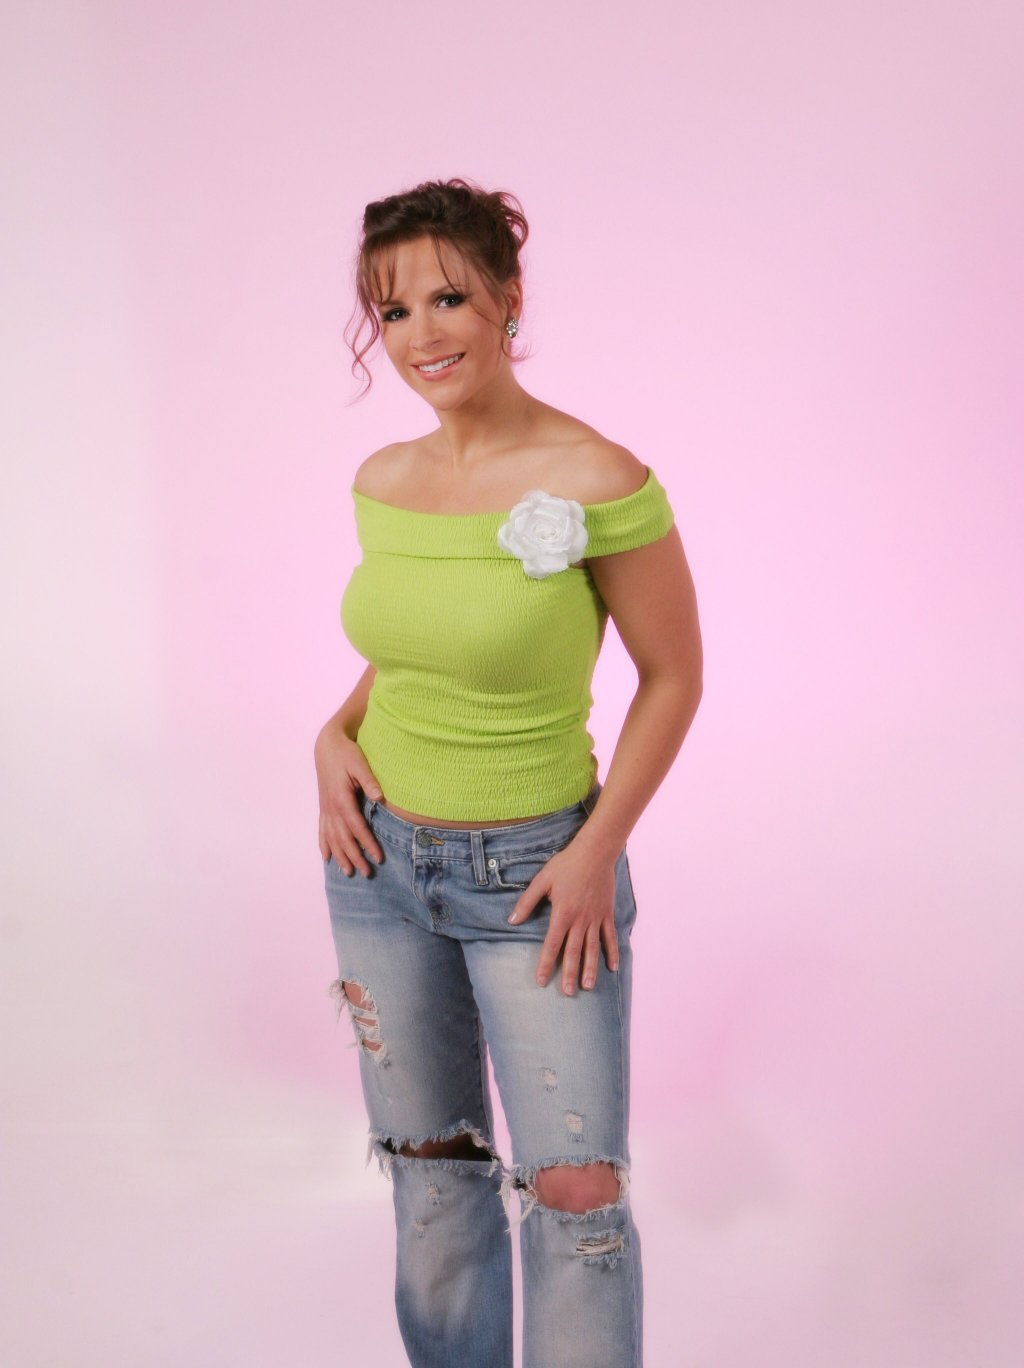 molly holly sexy pics